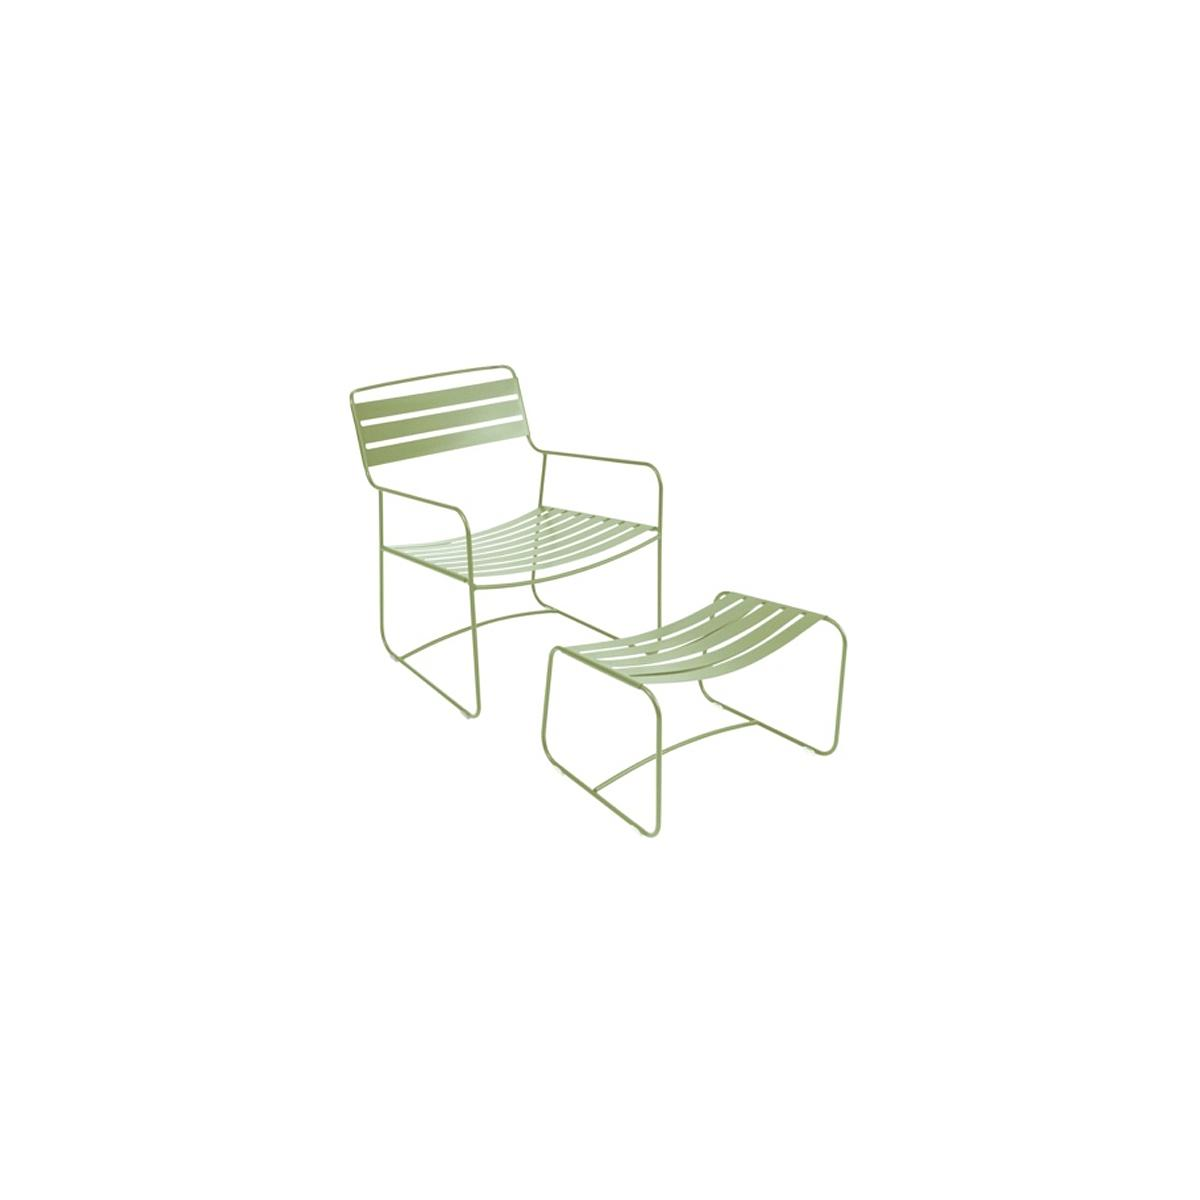 SURPRISING by Fermob Fauteuil + repose pied Vert tilleul